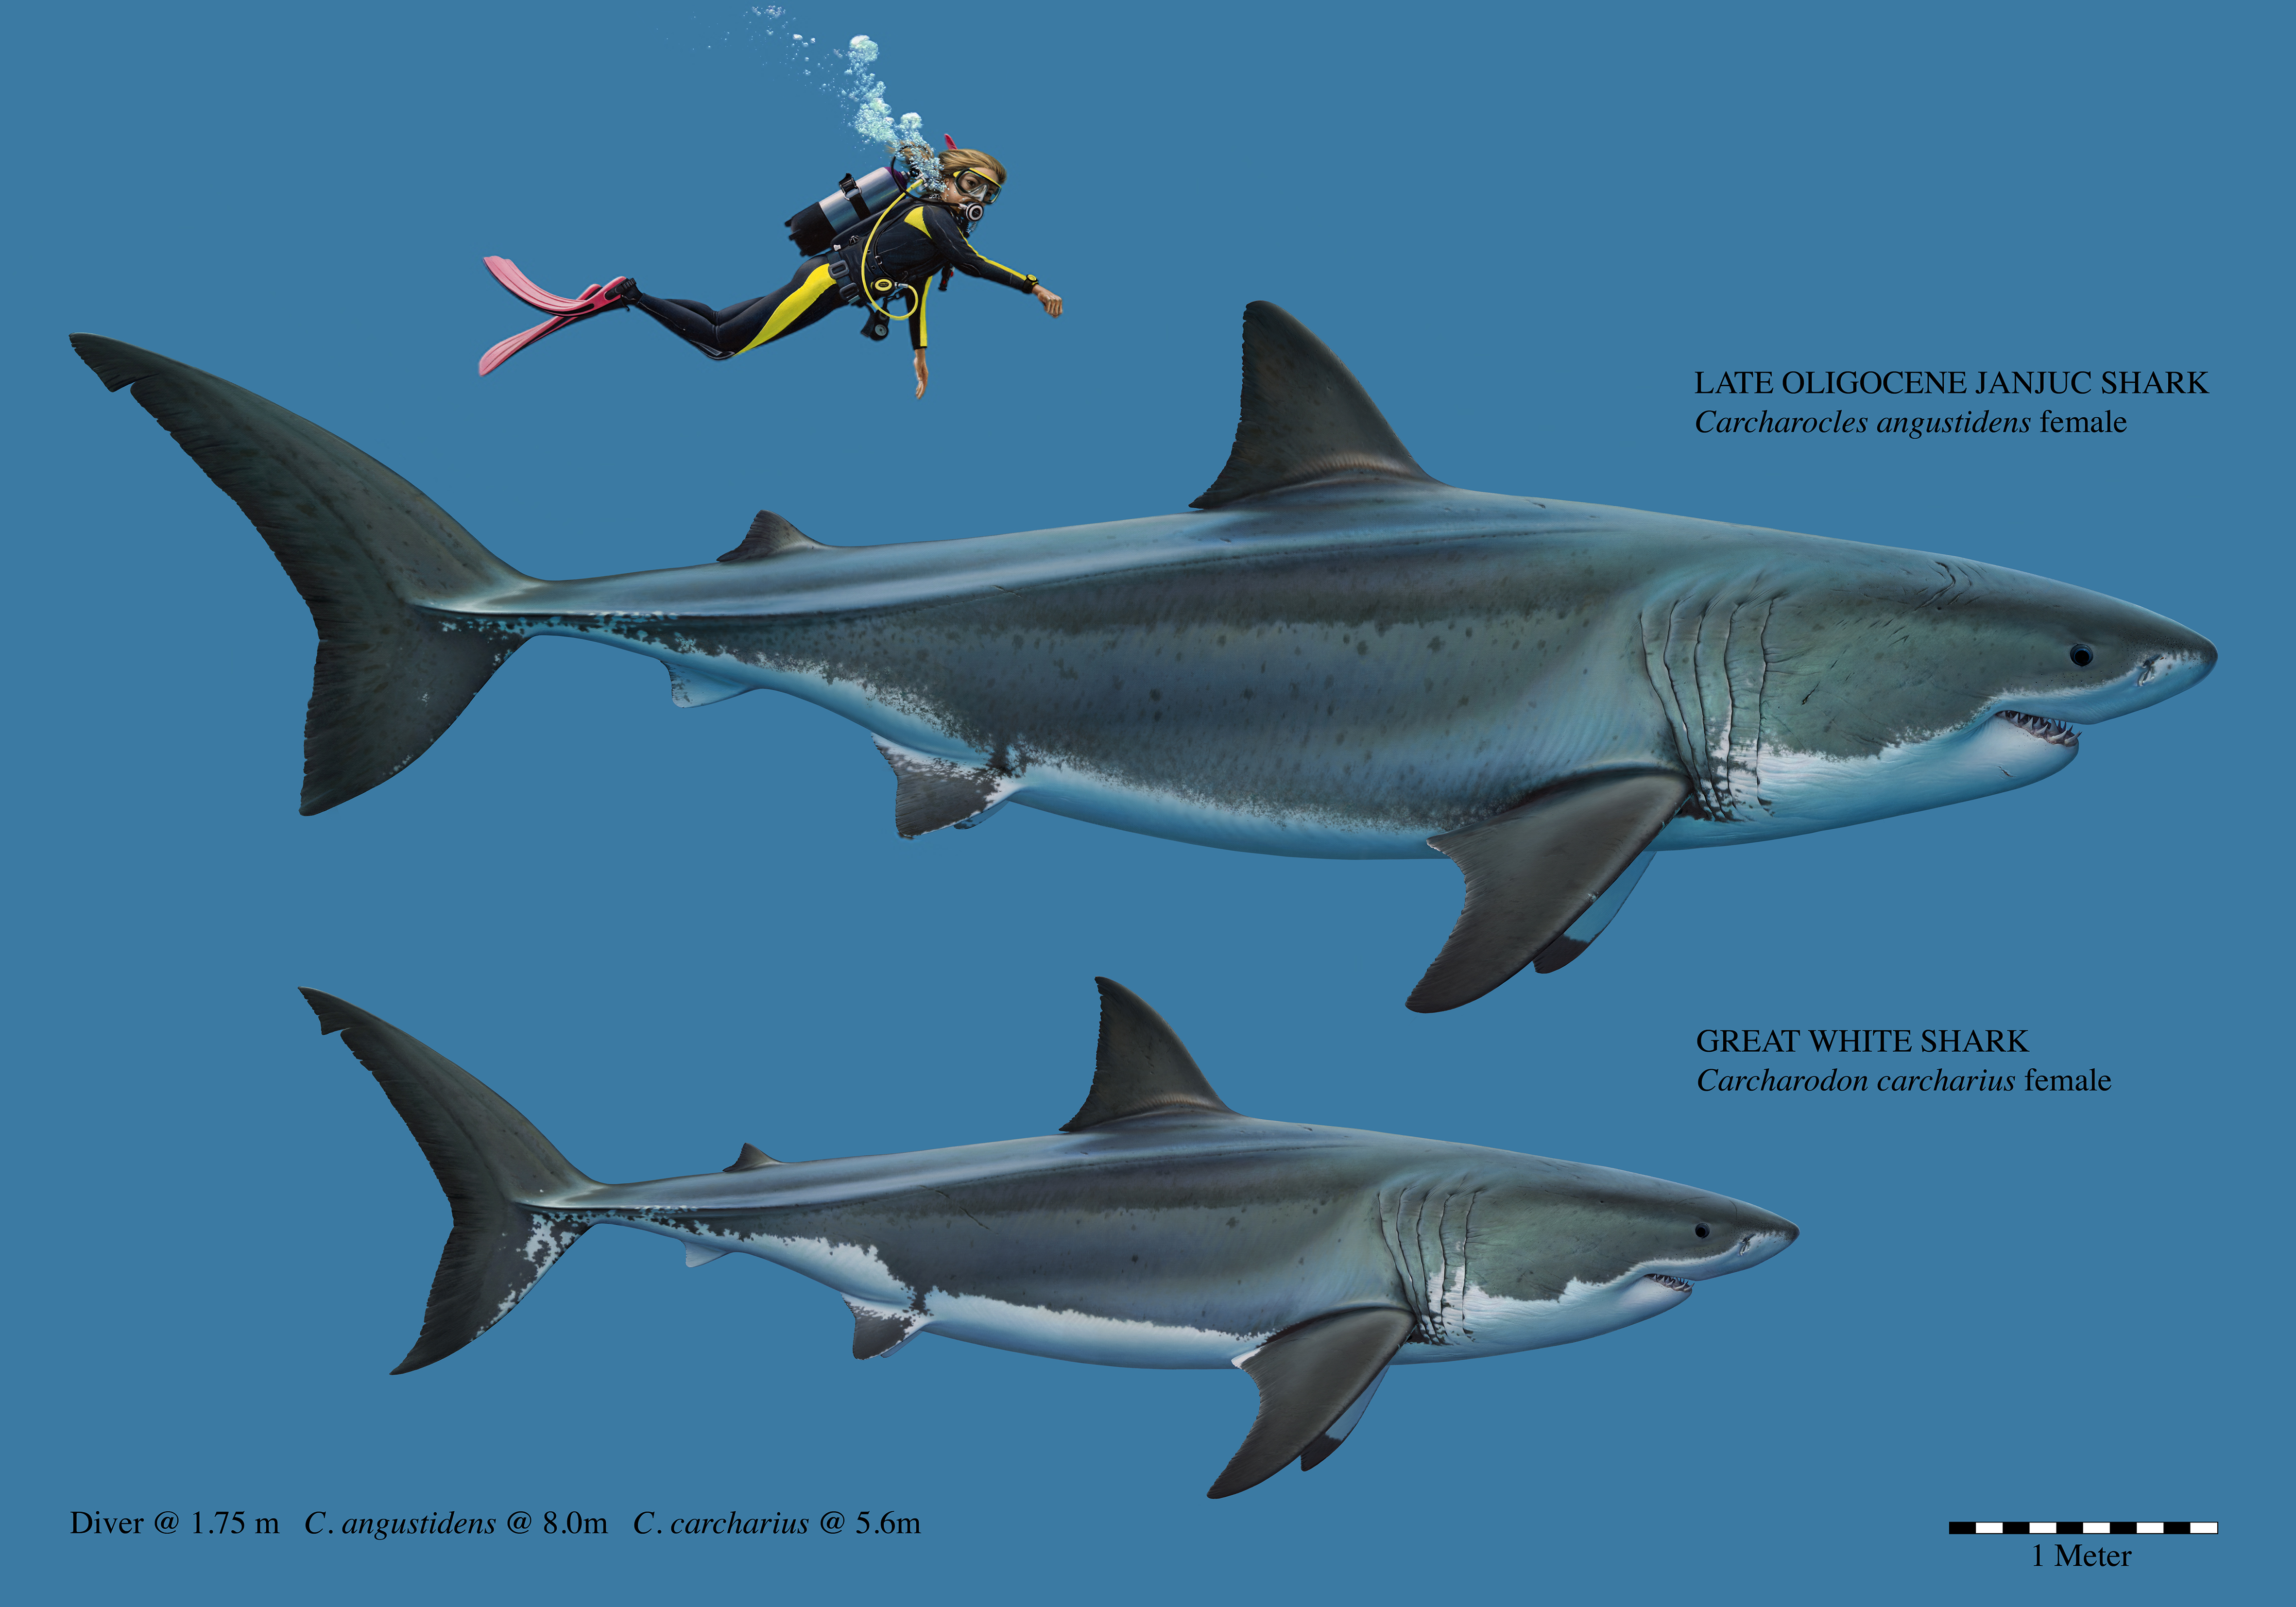 Size comparison of the Carcharocles angustidens and a Great White Shark. Source: Museums Victoria